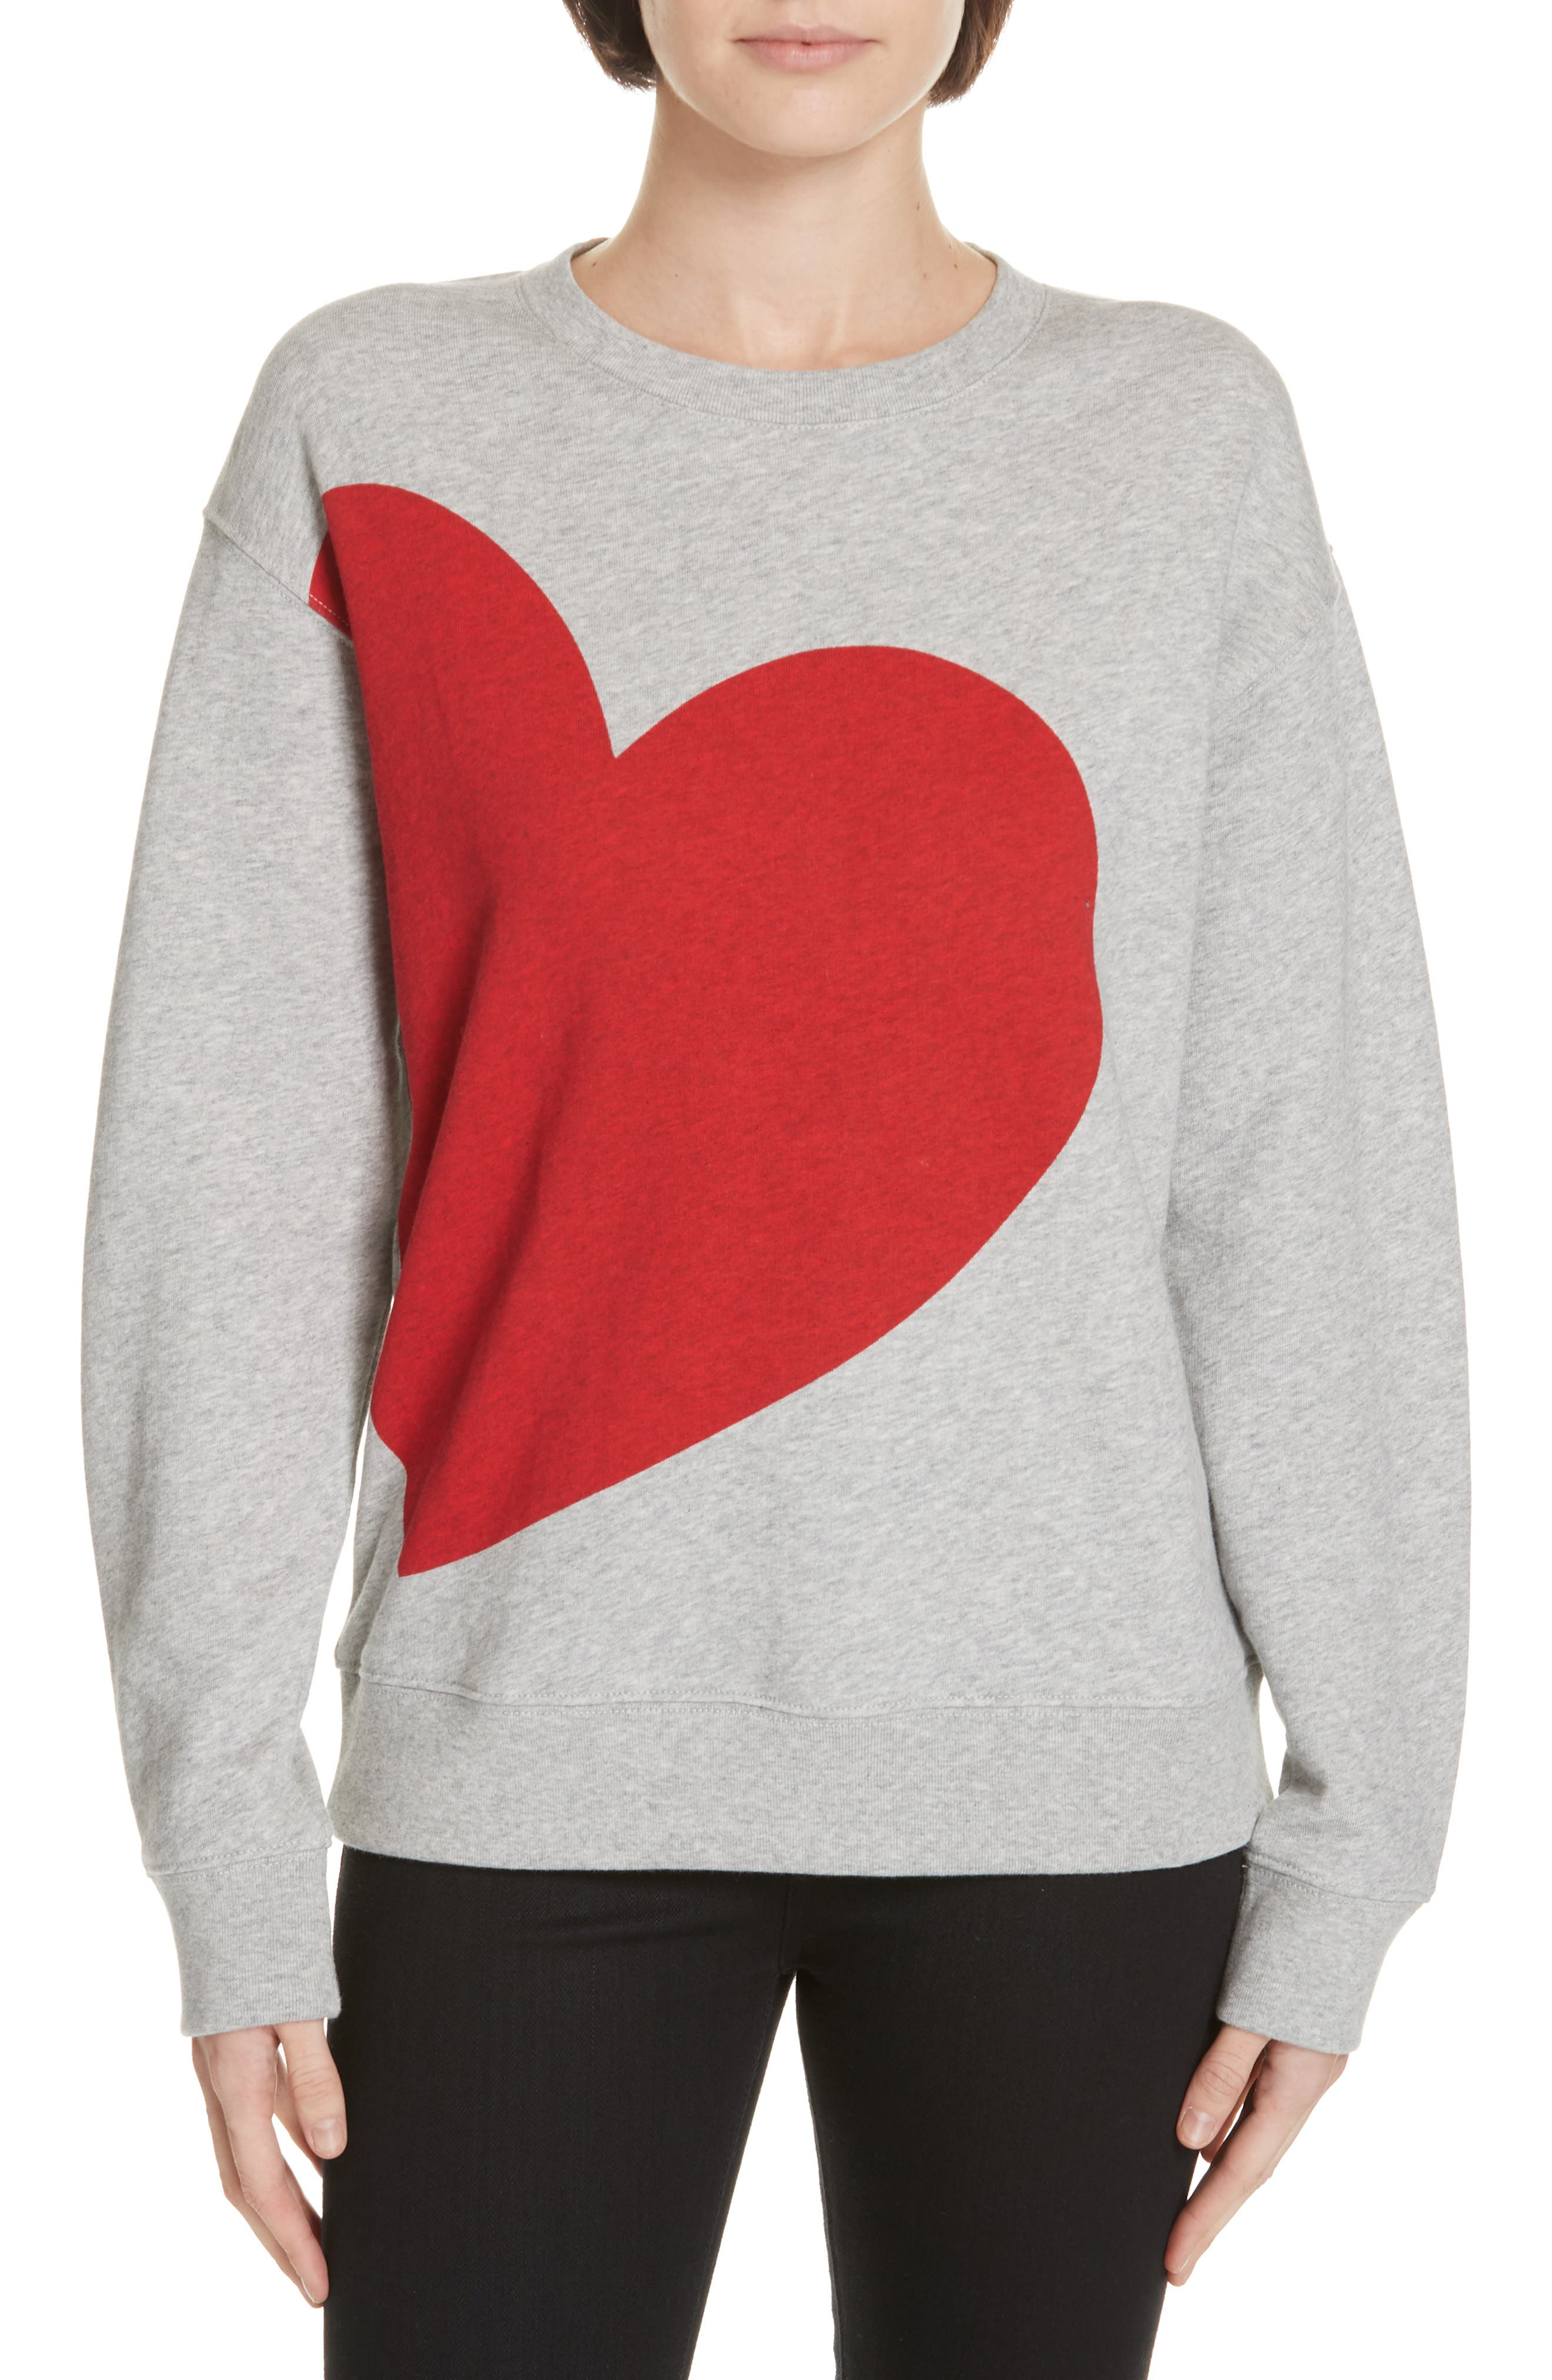 I Love Heart Mules Black Sweatshirt